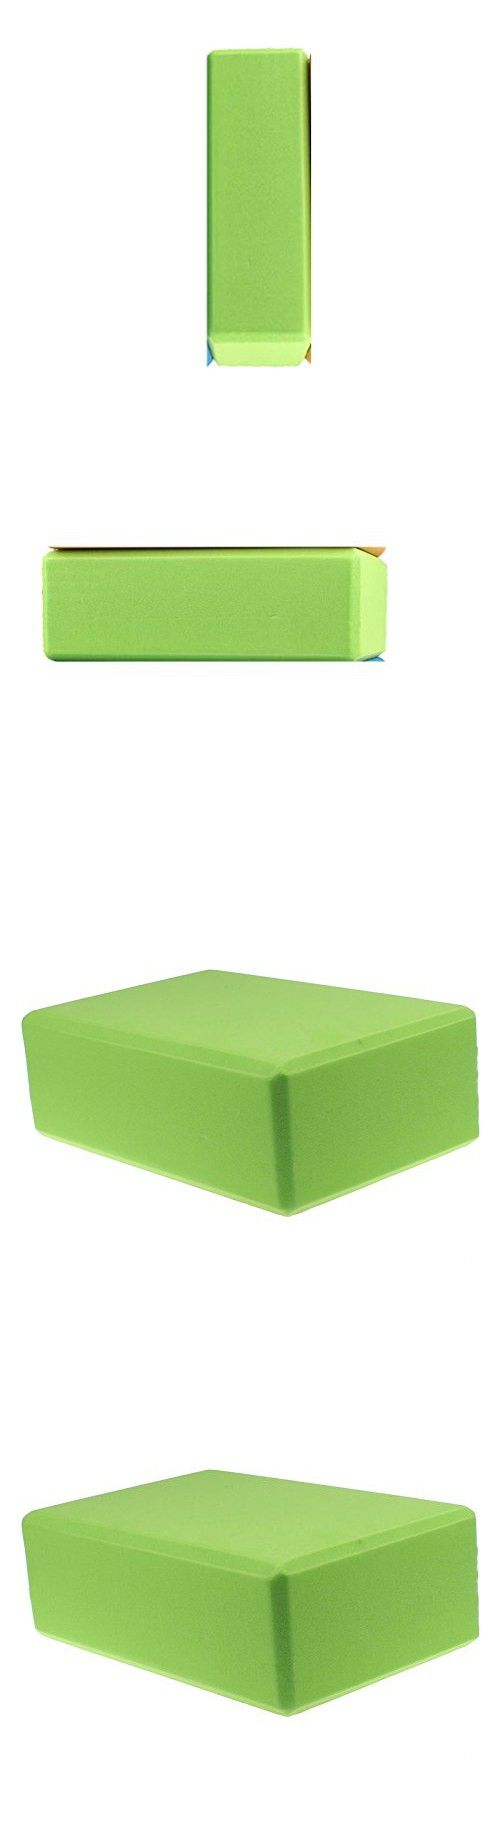 Green Women 1pc Foaming Foam Yoga Block Brick Home Exercise Practice Fitness Gym Sport Fitness Stretching Tool,yoga Block 9x6x4 , Yoga Blocks for Kids, Yoga Blocks 9x6x3,yoga Blocks Bulk,yoga Block 3 Inch ,Yoga Block Thin,yoga Block 4,yoga Block Foam, Yog